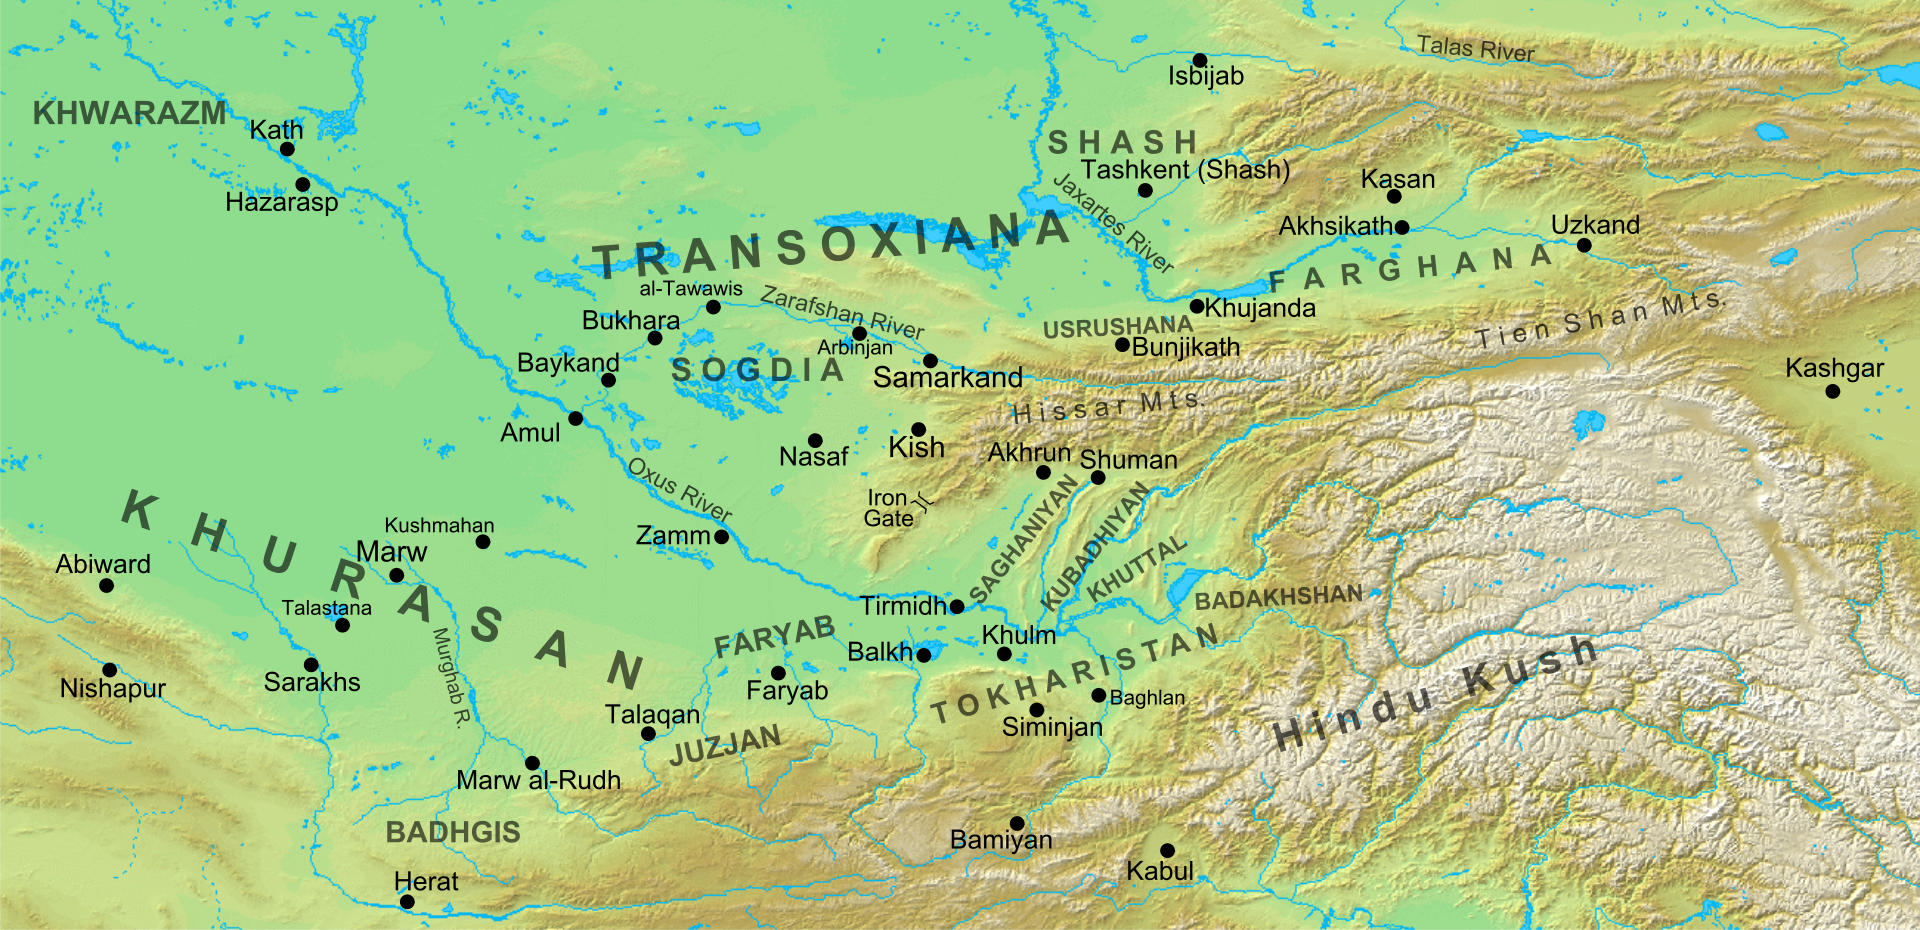 The Battle of Talas in 751 CE